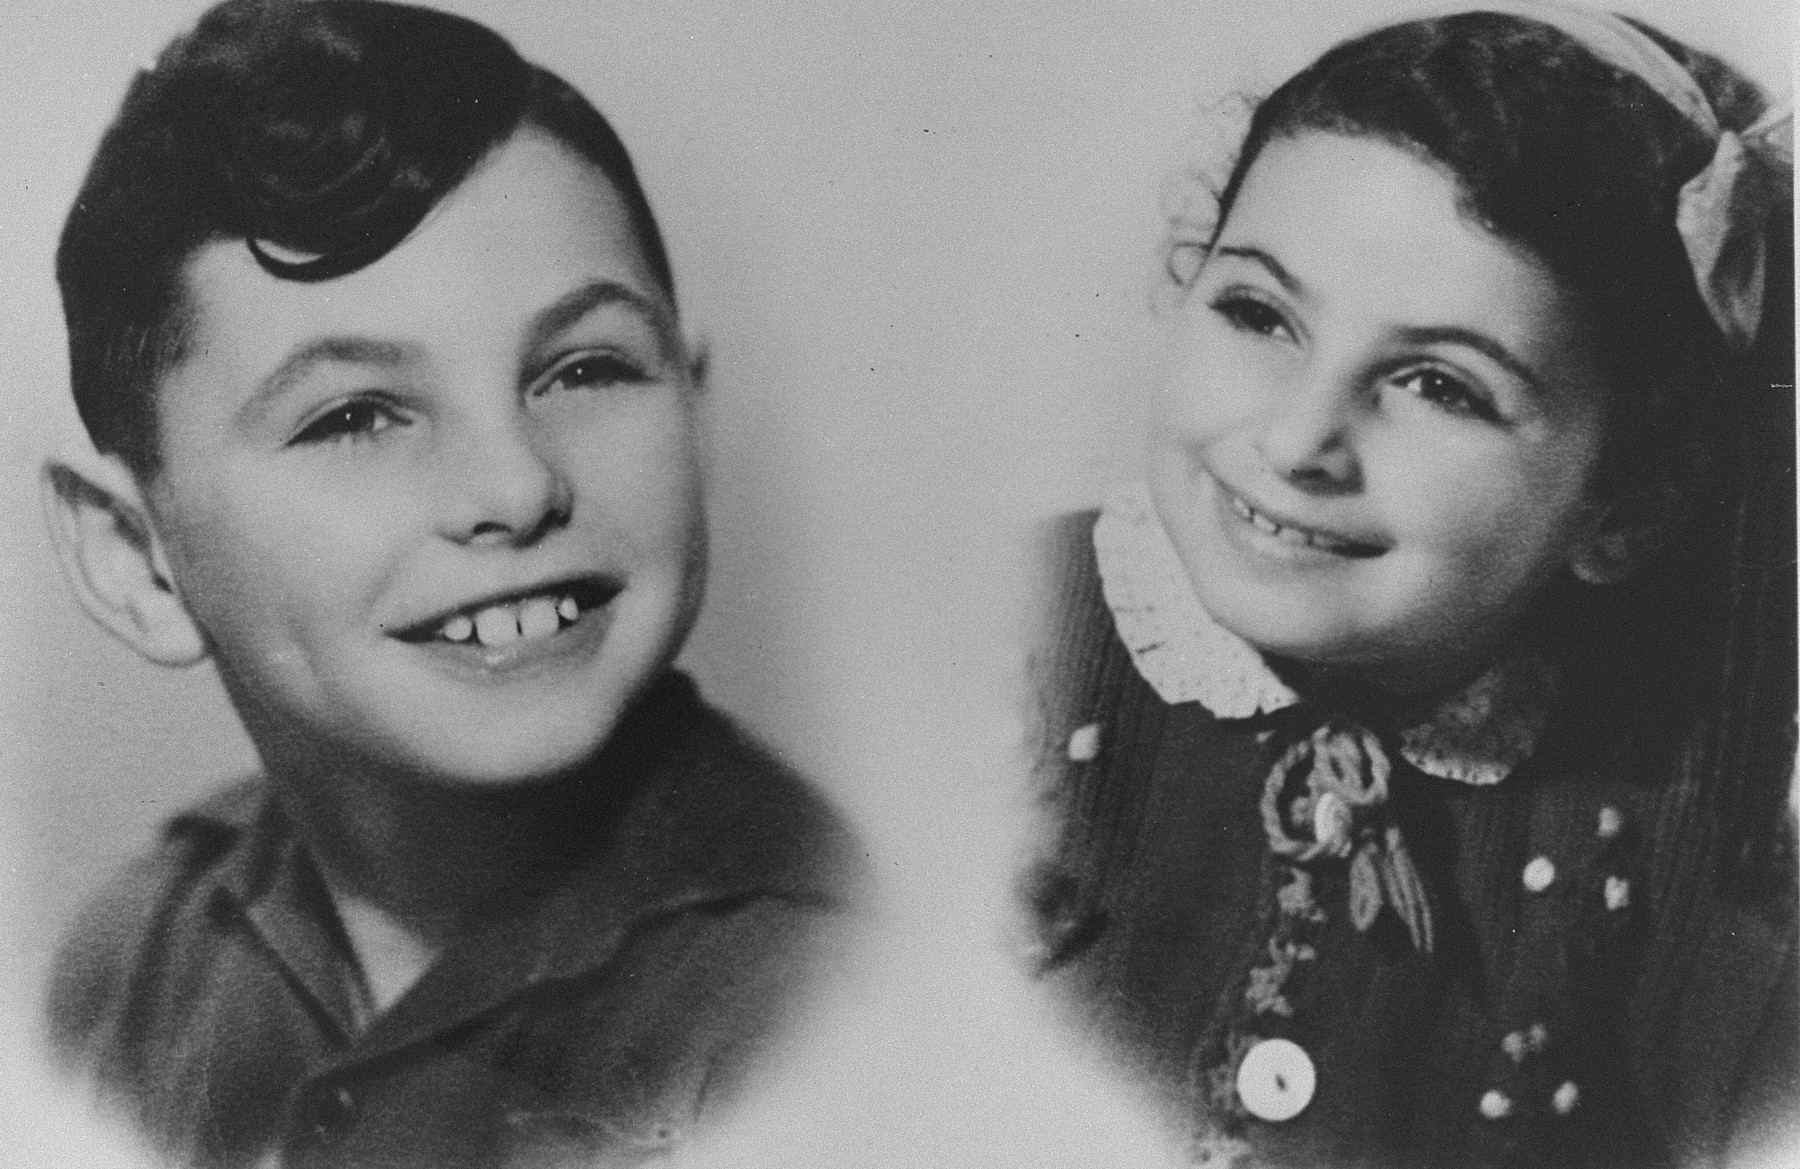 Portrait of two Jewish children, Shlomo and Eva Haringman, while living in hiding with the DeVries family.